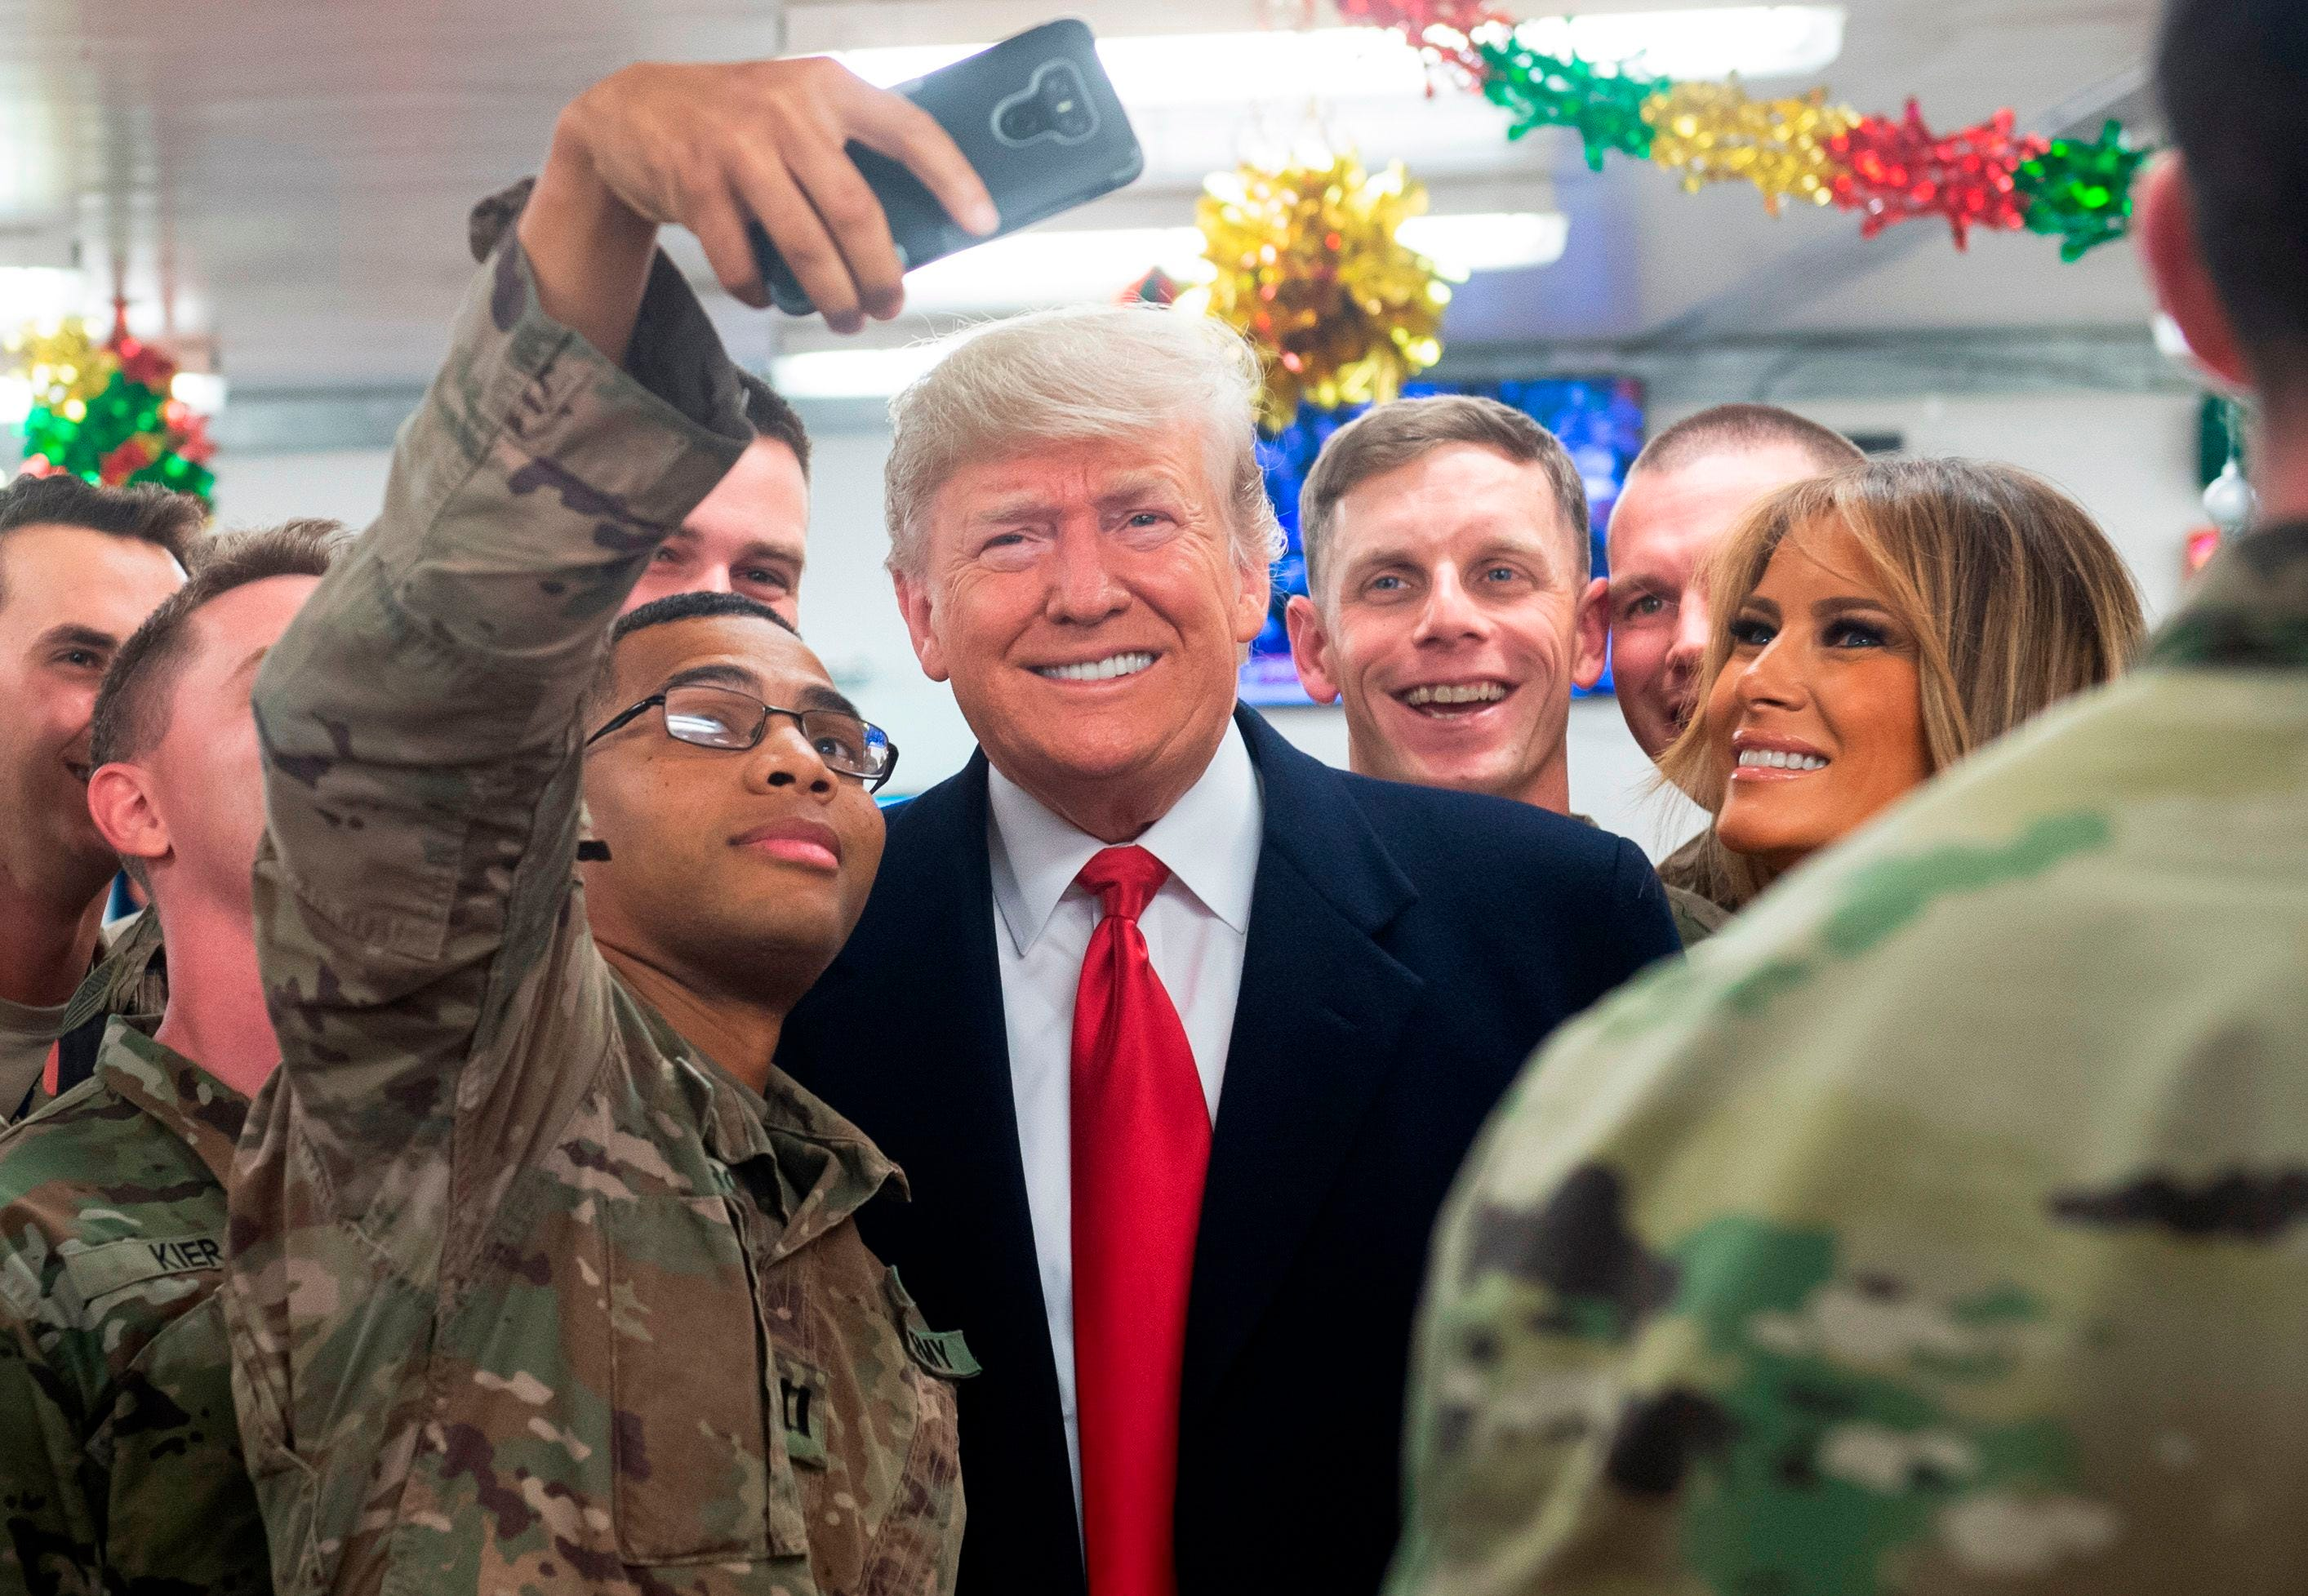 Melania Trump Christmas With The Troops 2021 Trump S Surprise Iraq Visit Flips Script On Biased Opponents Talker